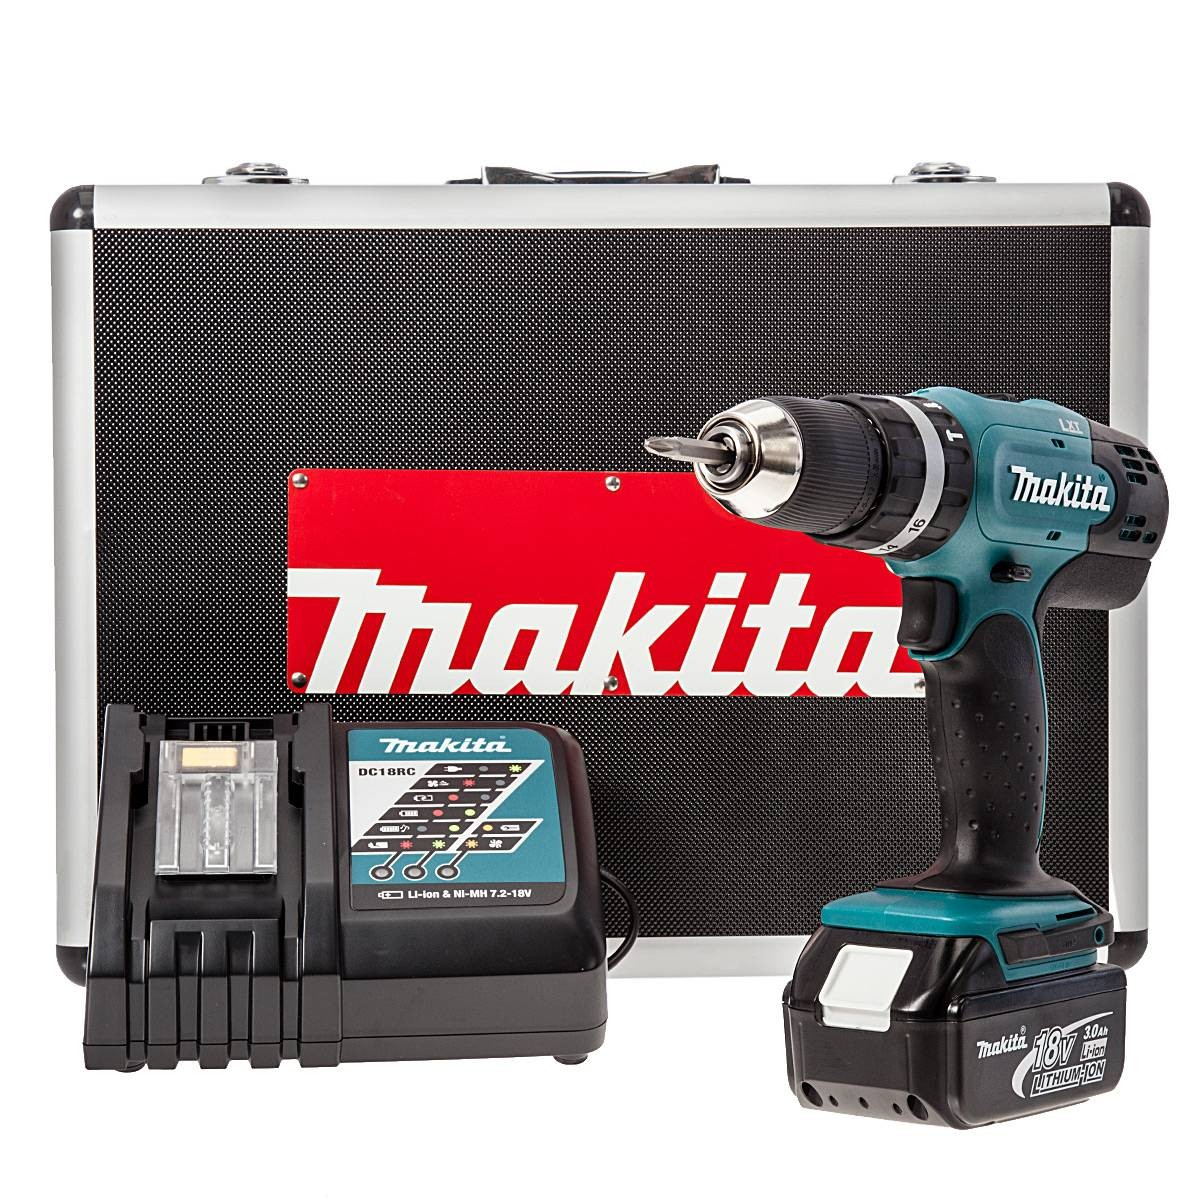 Makita DHP453RFX Cordless 18V Li-Ion Combi Drill (1 x 3.0Ah Battery) in Metal Carry Case